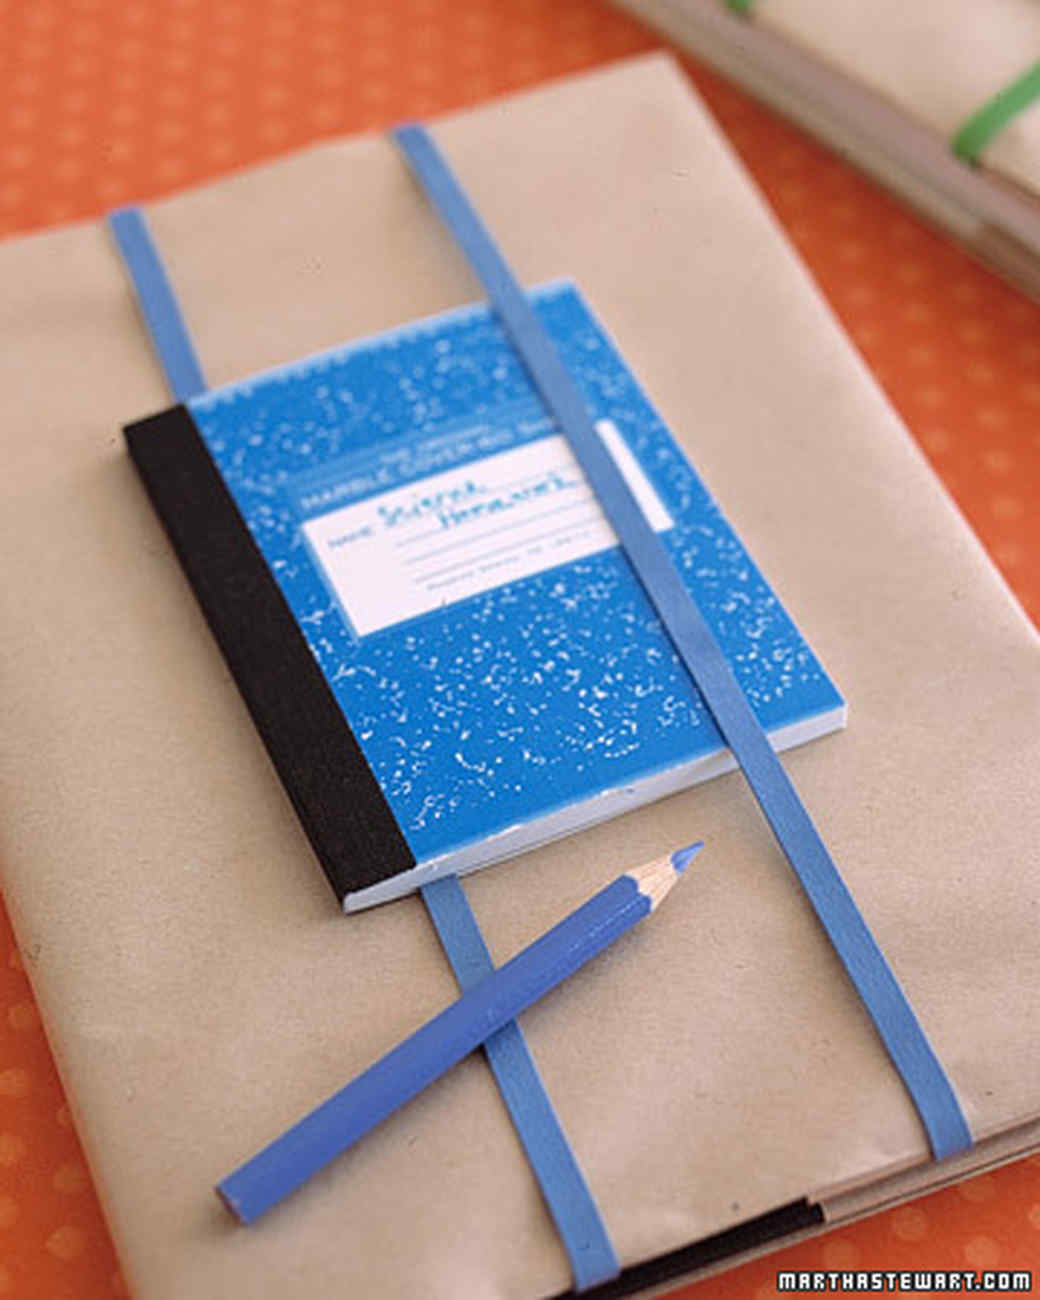 Diy School Book Cover ~ Covering textbooks martha stewart